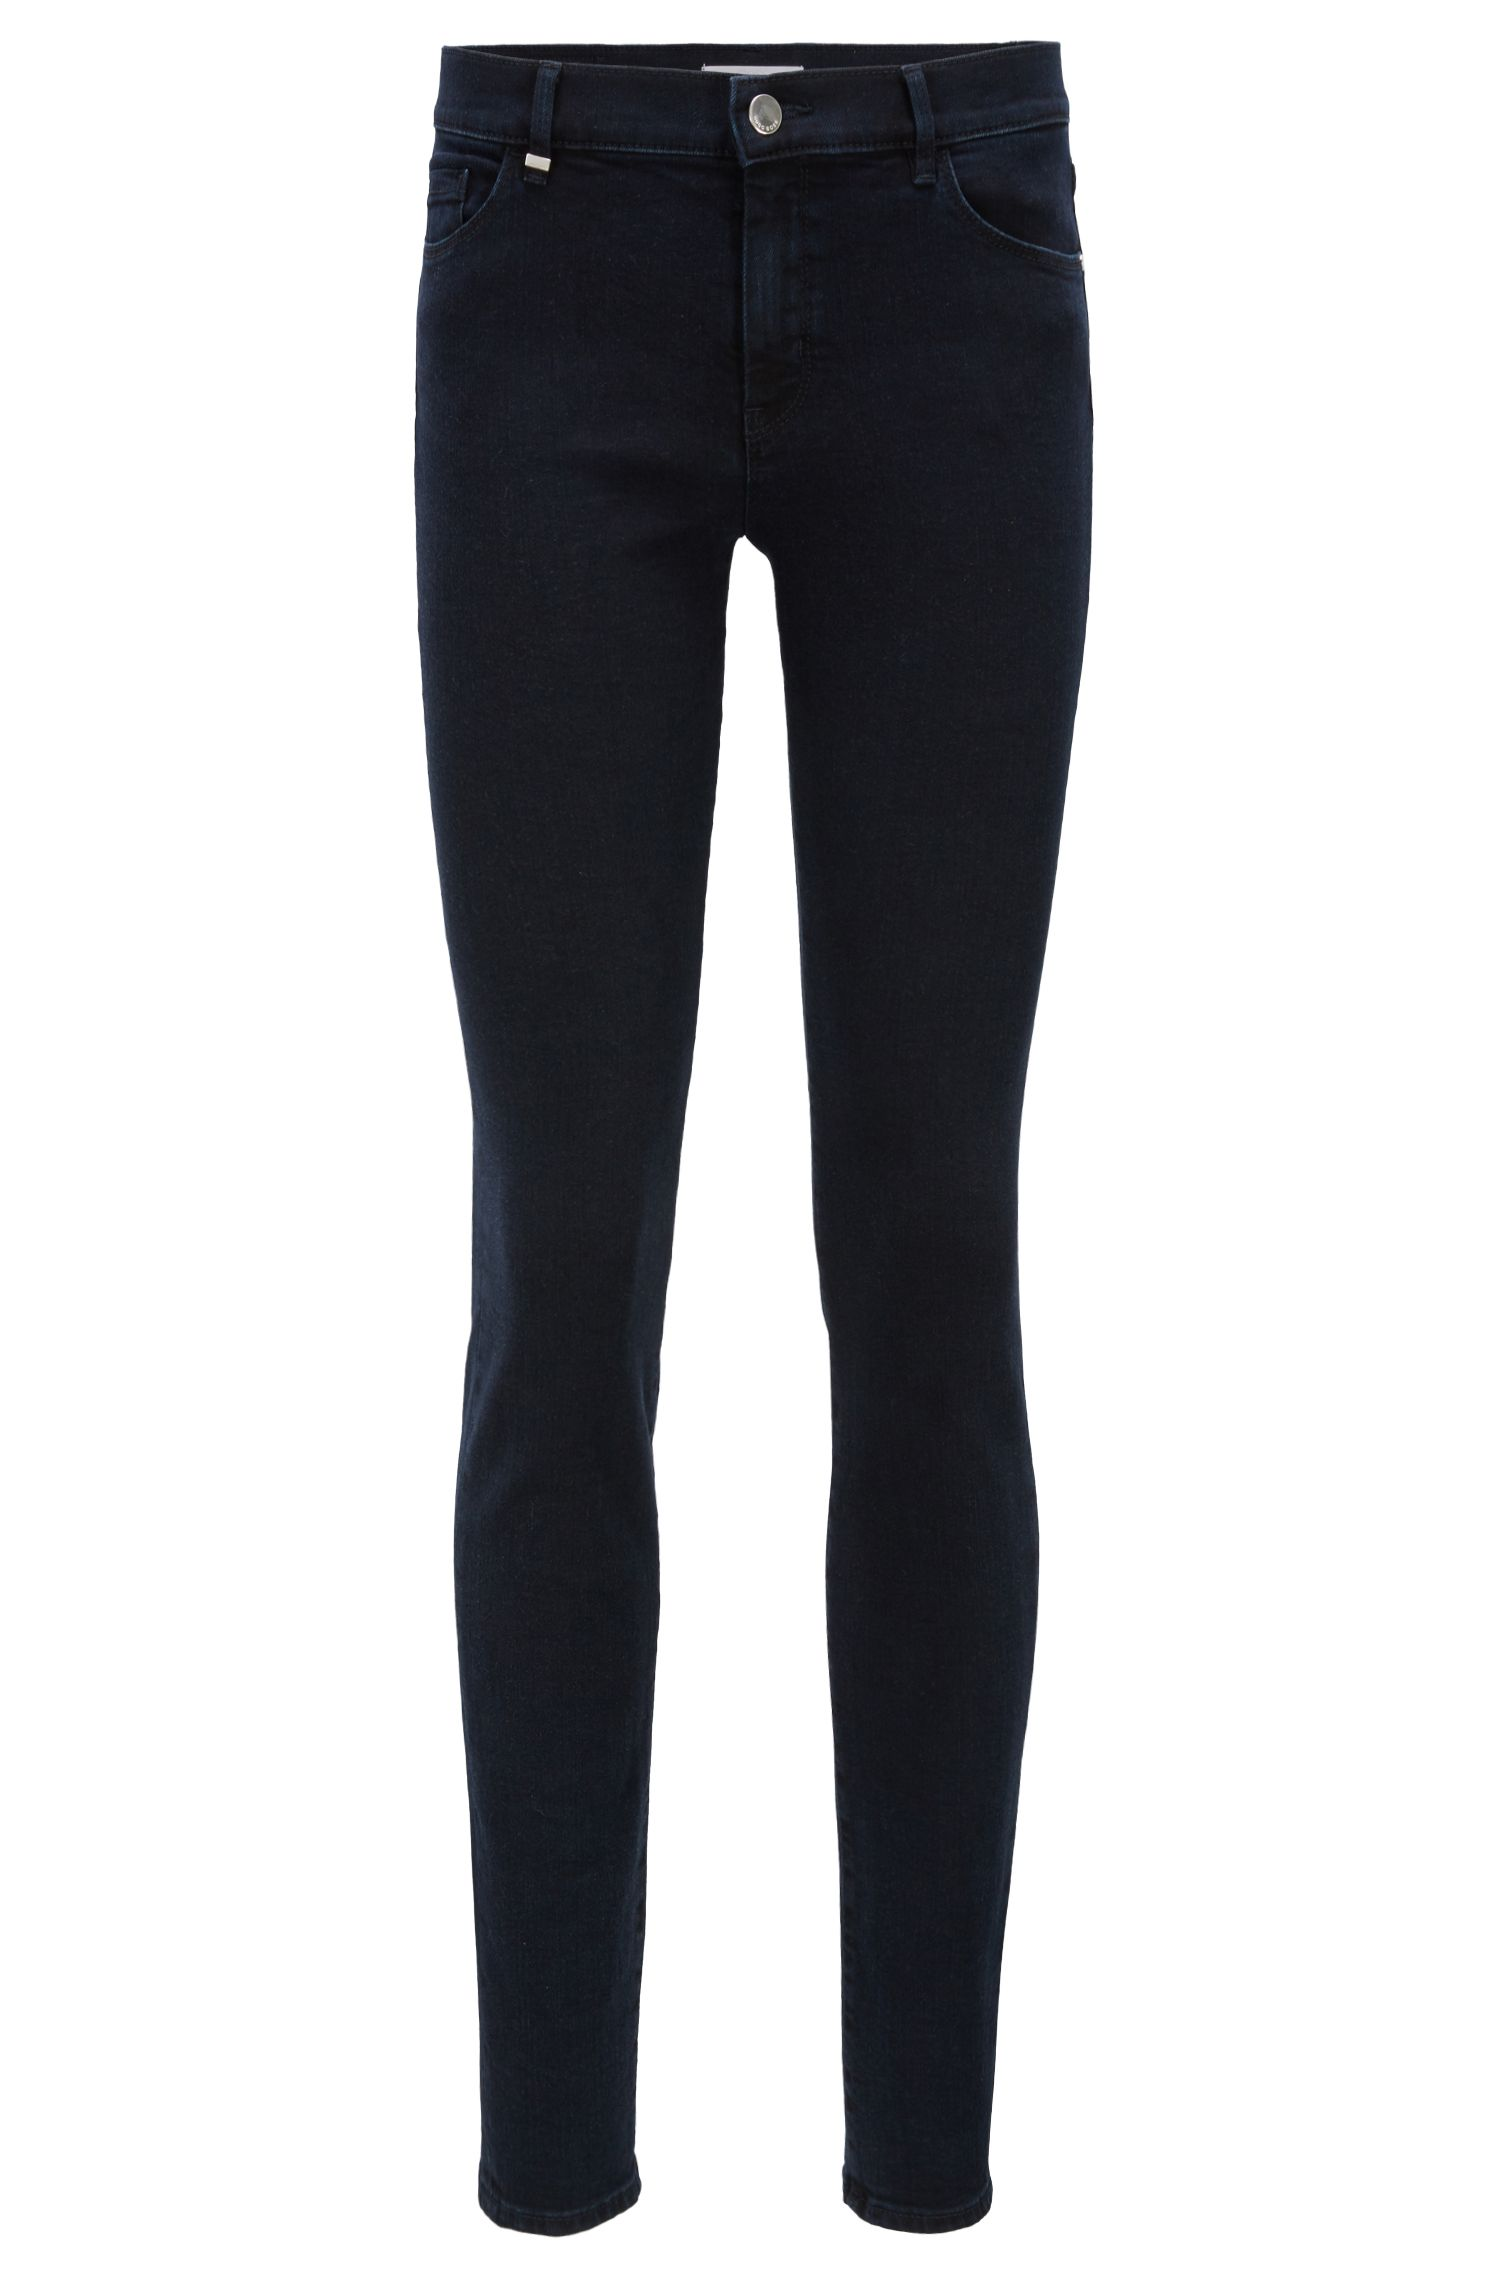 Slim-fit jeans in blue-black super-stretch denim